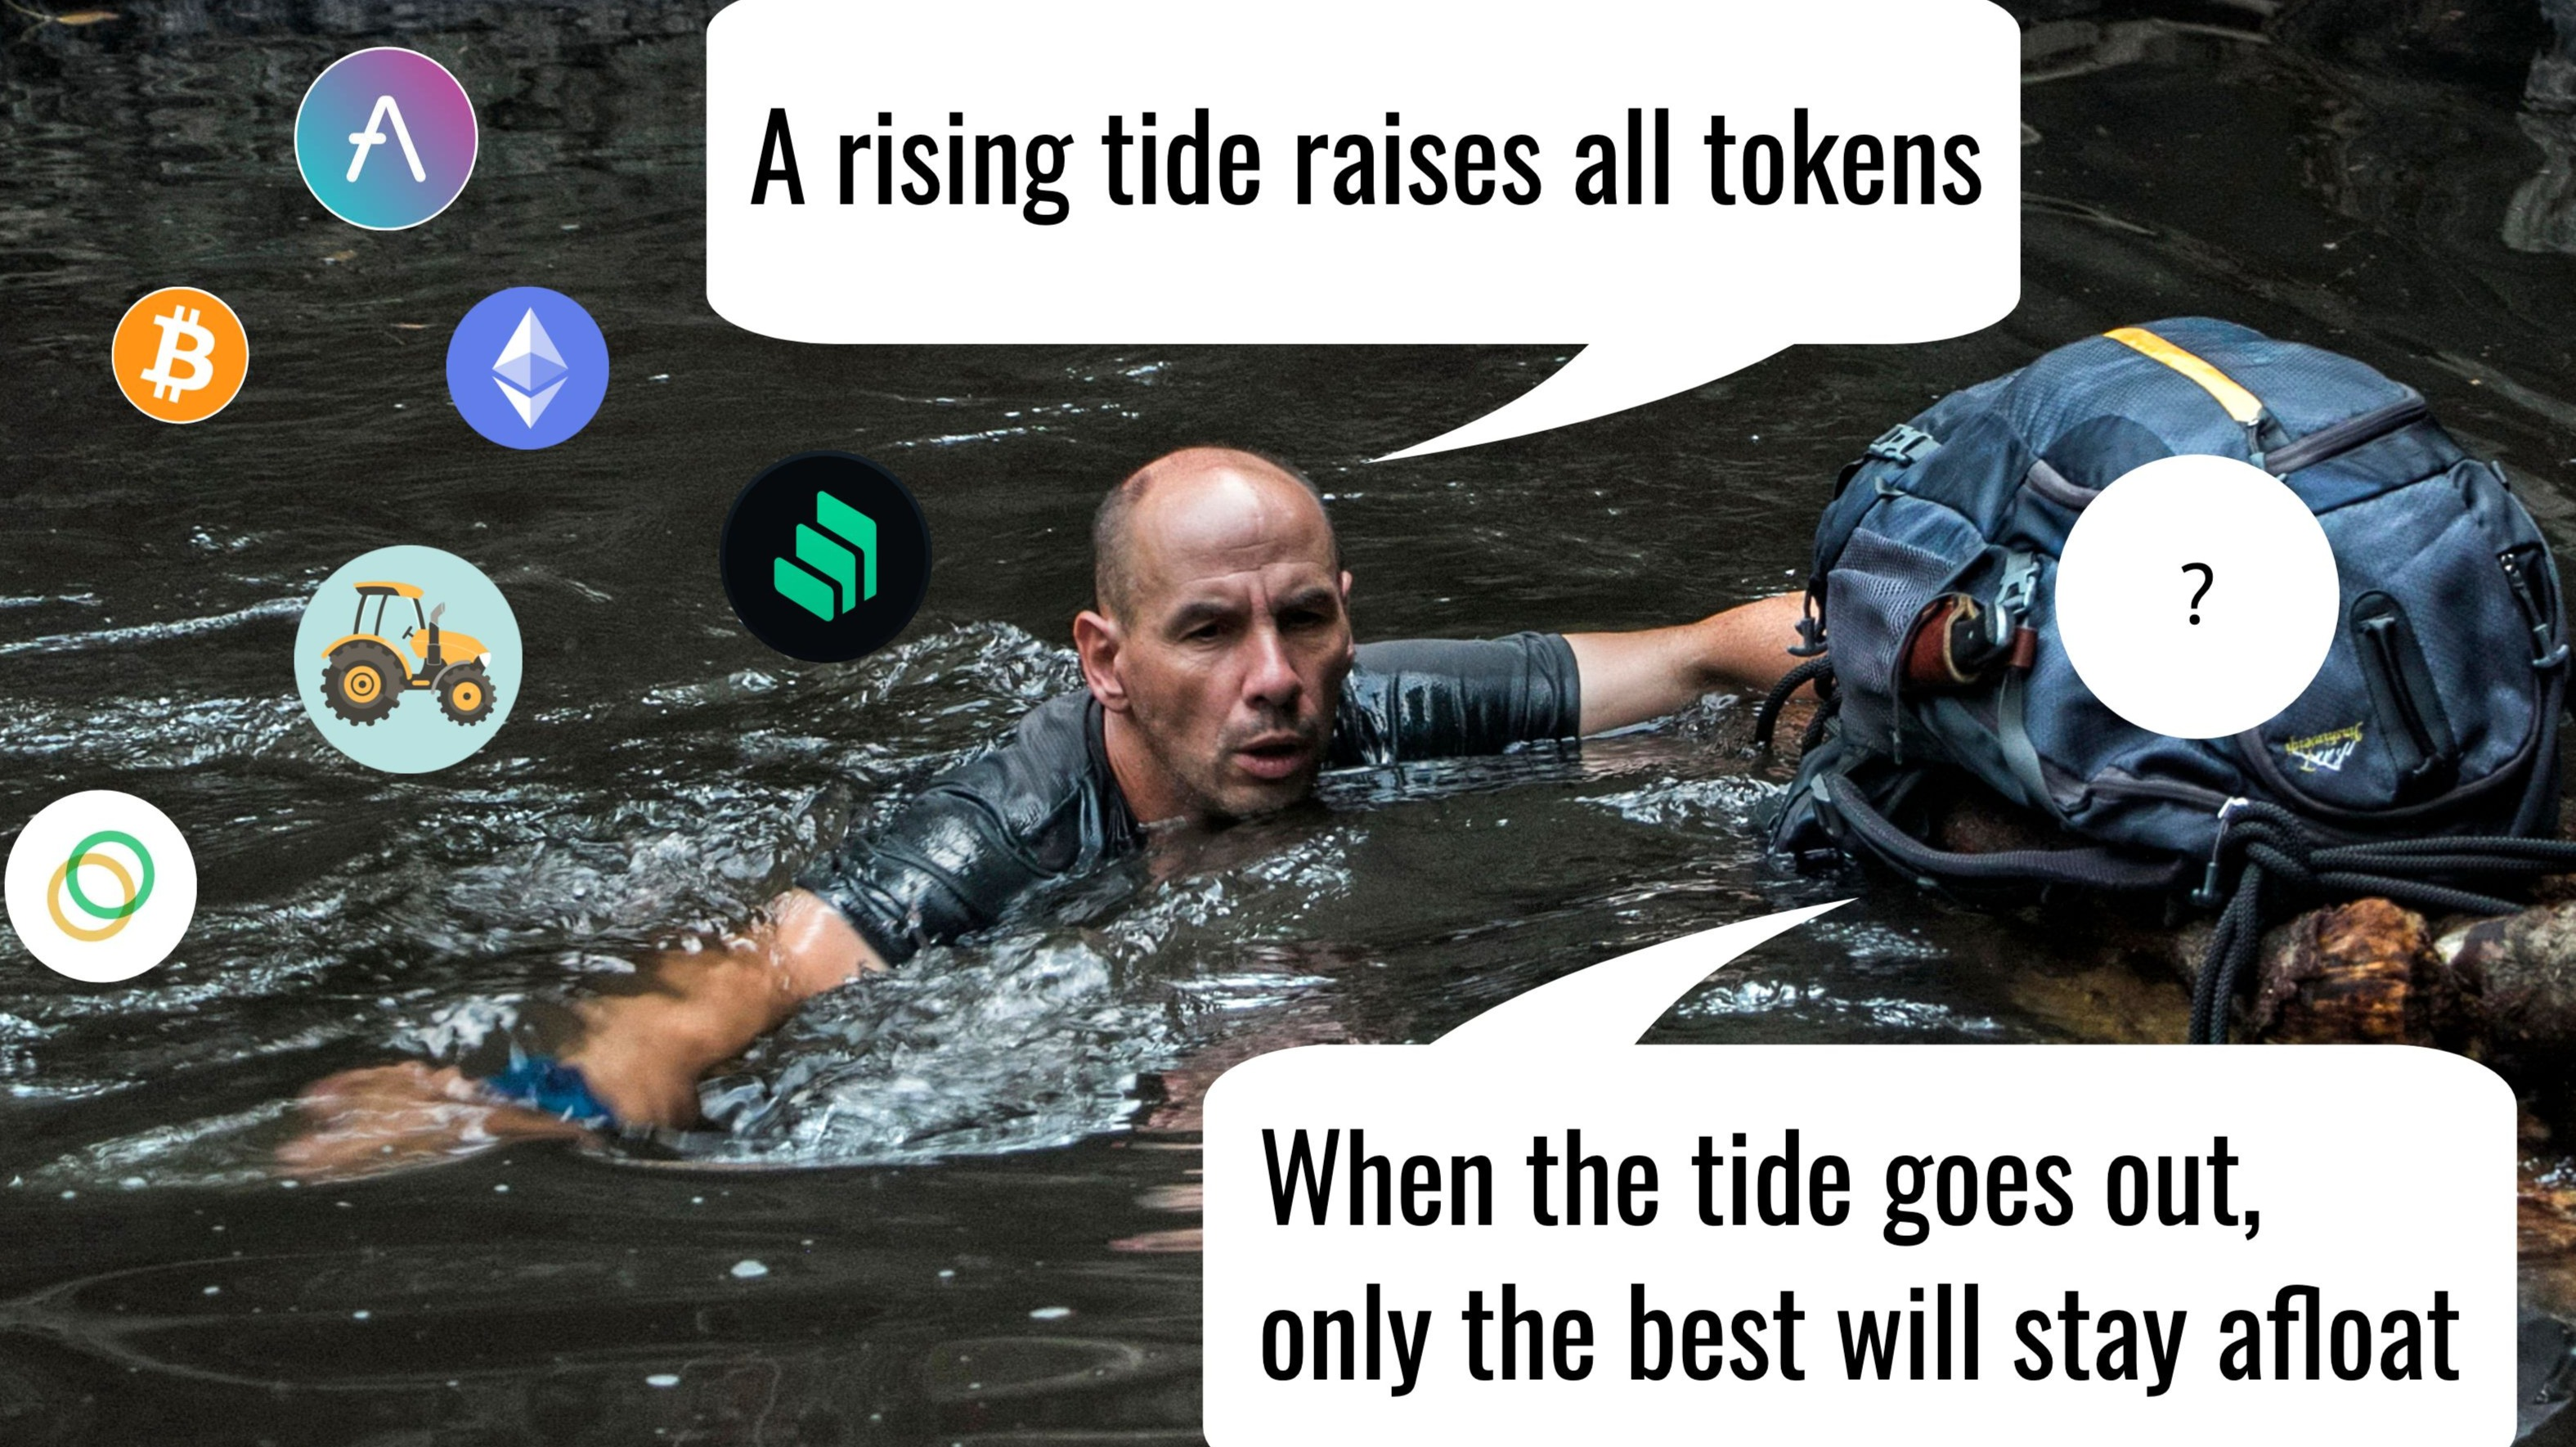 A rising tide raises all tokens